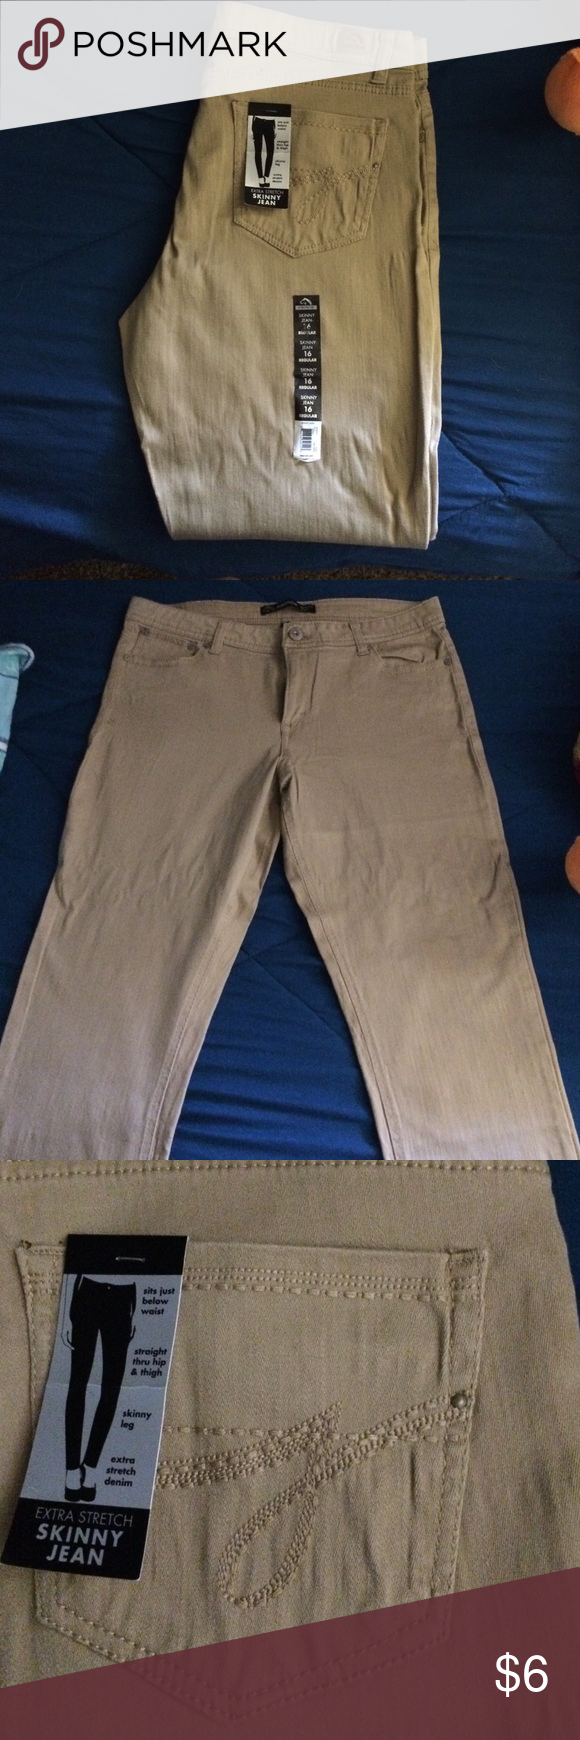 Tan jeans Brand new with tags , tan with embroidered back pockets, Jordache jeans, skinny jean 16 Reg. Extra stretch.. jordache Jeans